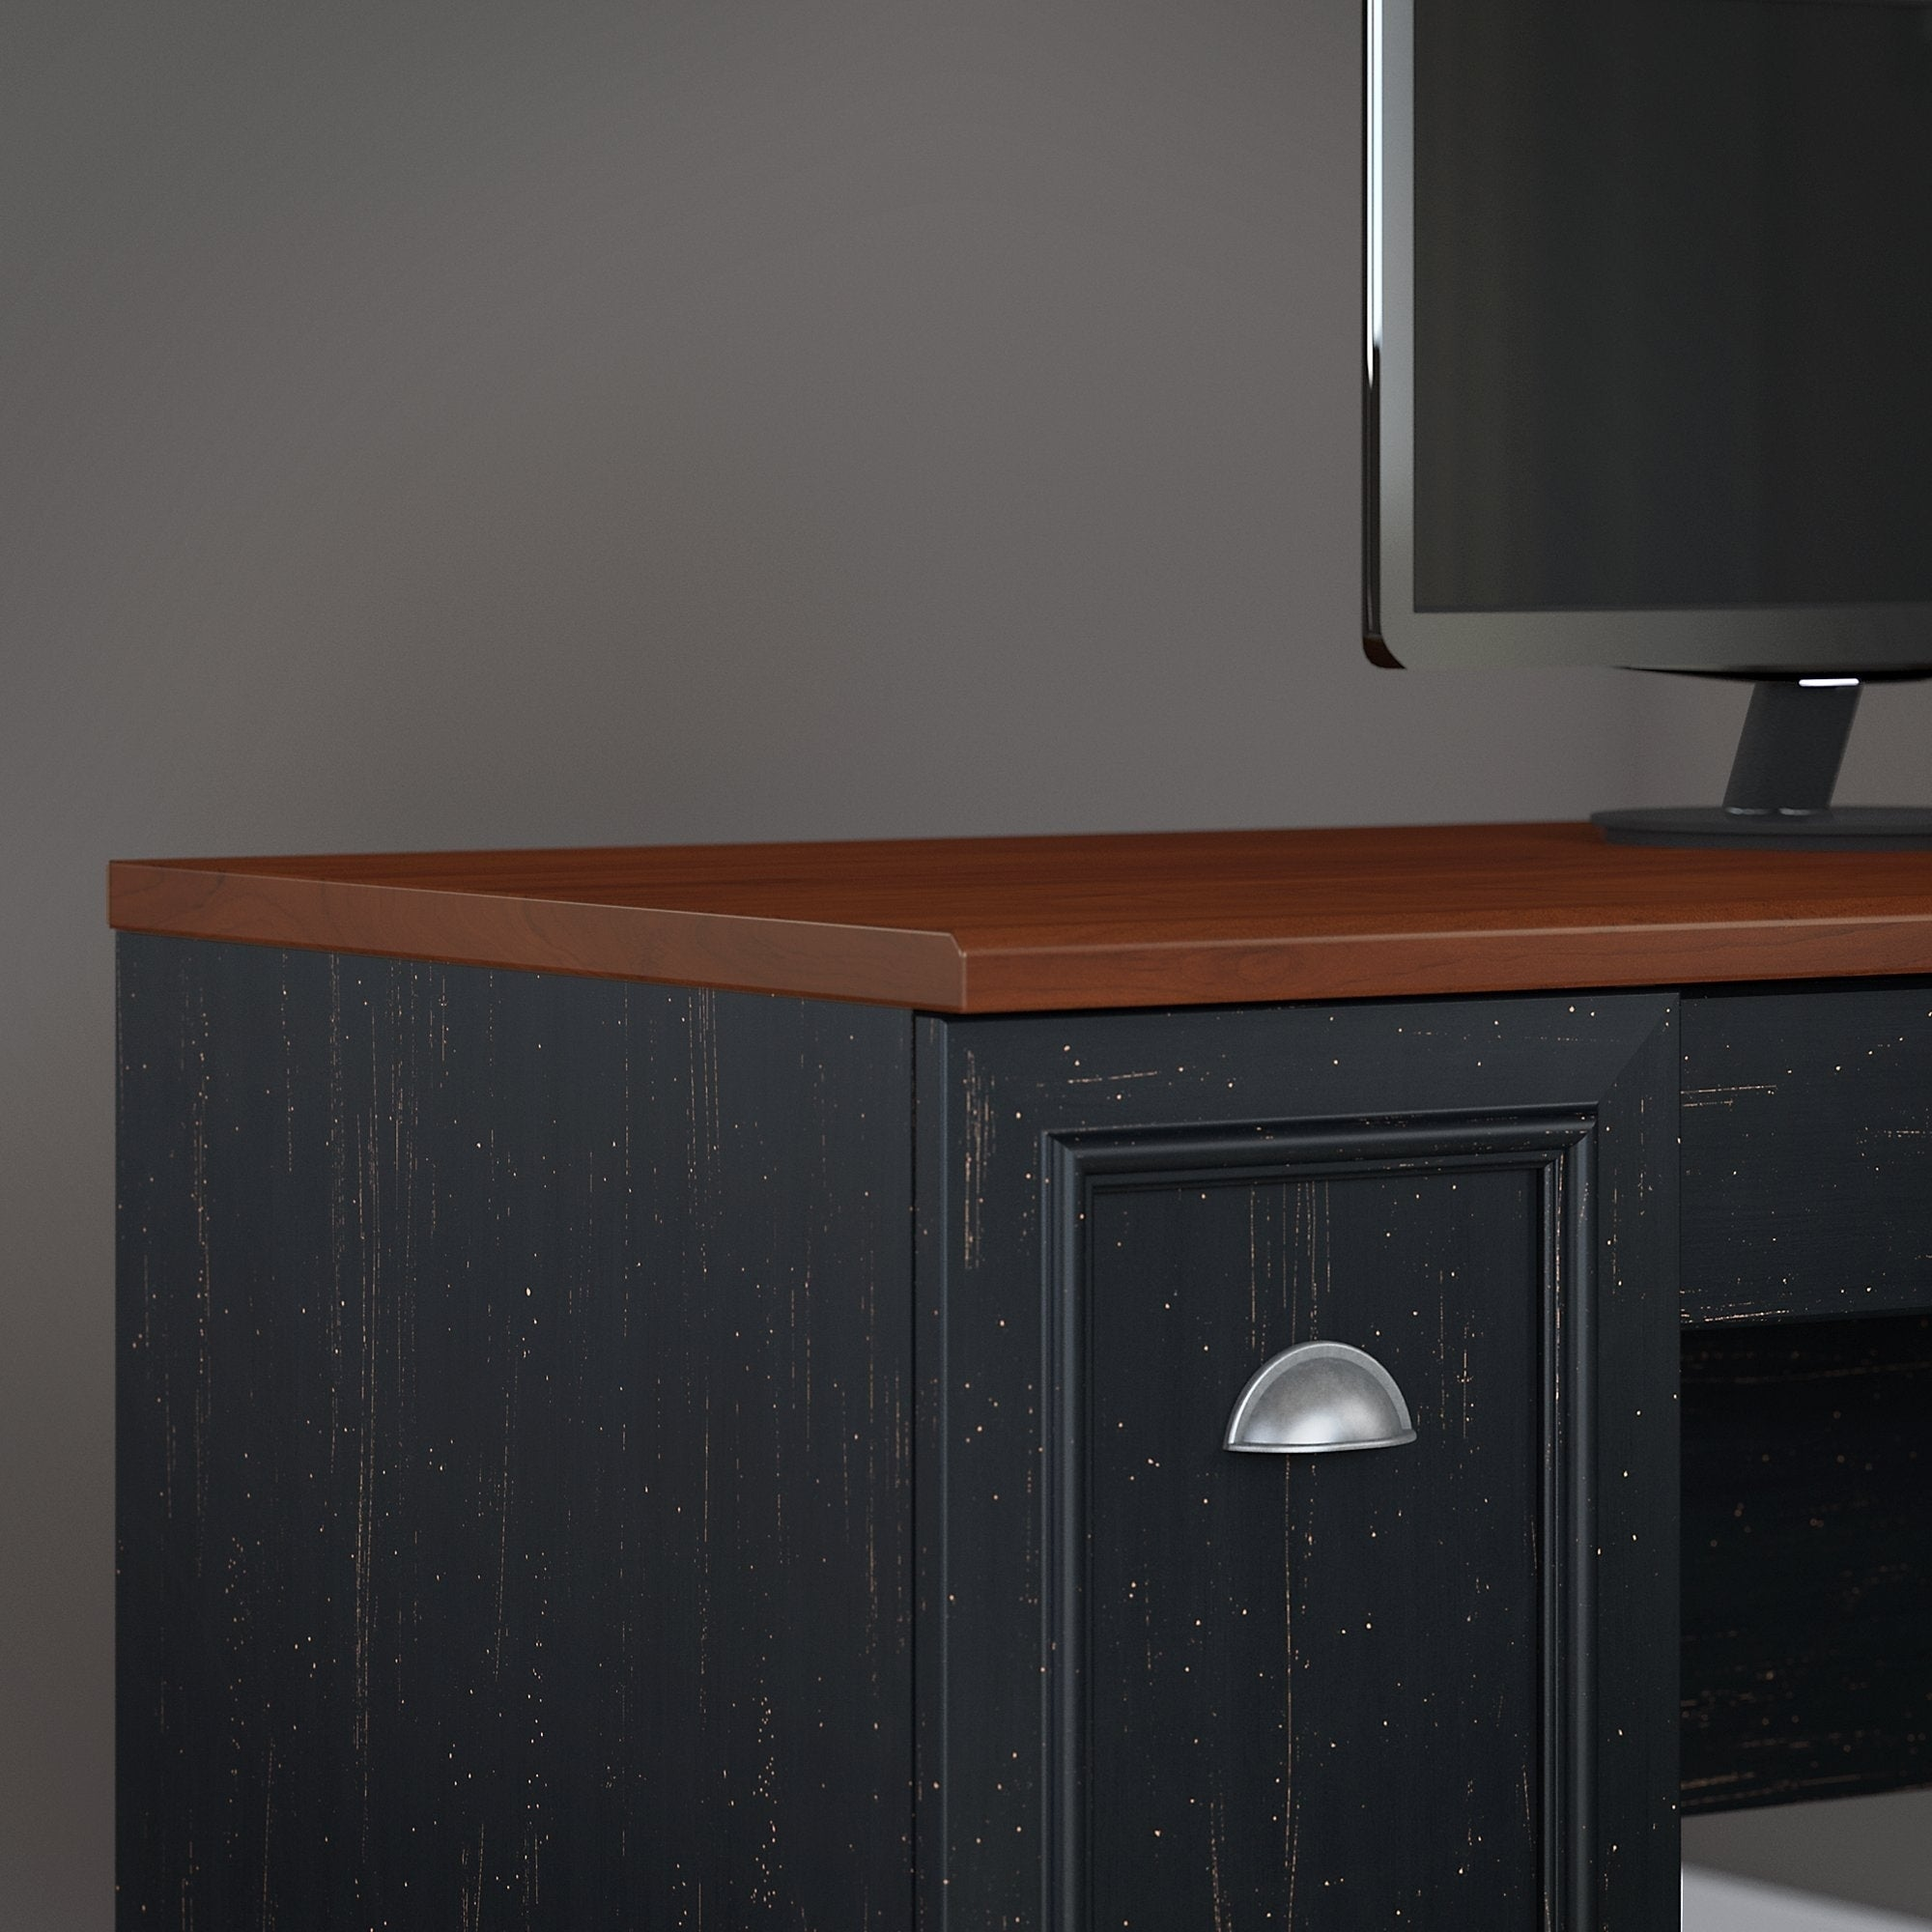 Shop Copper Grove Khashuri L Shaped Desk With Hutch, Storage Cabinets, And  5 Shelf Bookcase In Antique Black And Hansen Cherry   Free Shipping Today  ...